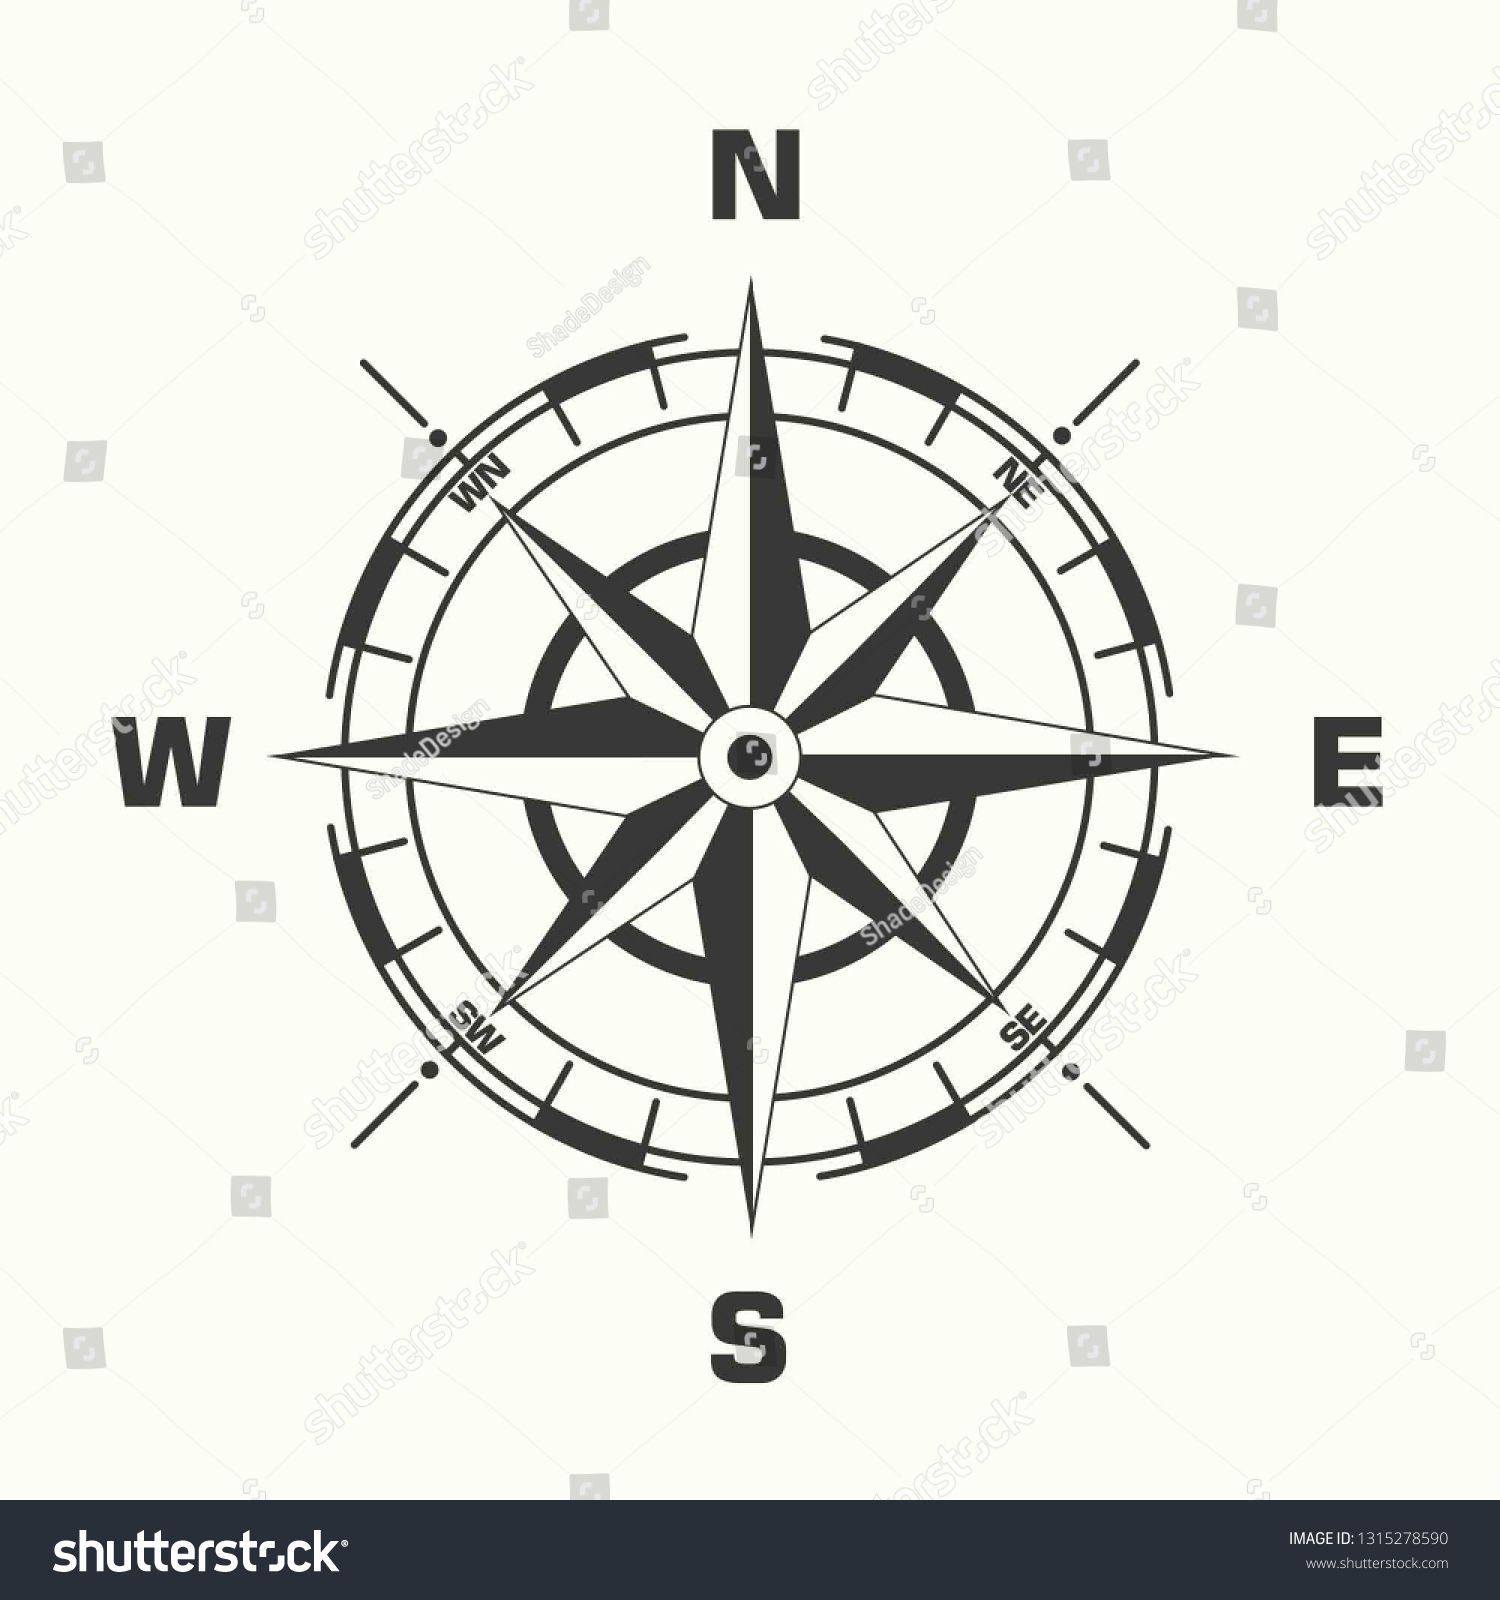 Vector Geography Science Compass Sign Icon Compass Wind Rose Illustration In Flat Minimalism Style Sponsored Spo In 2020 Rose Illustration Wind Rose Illustration